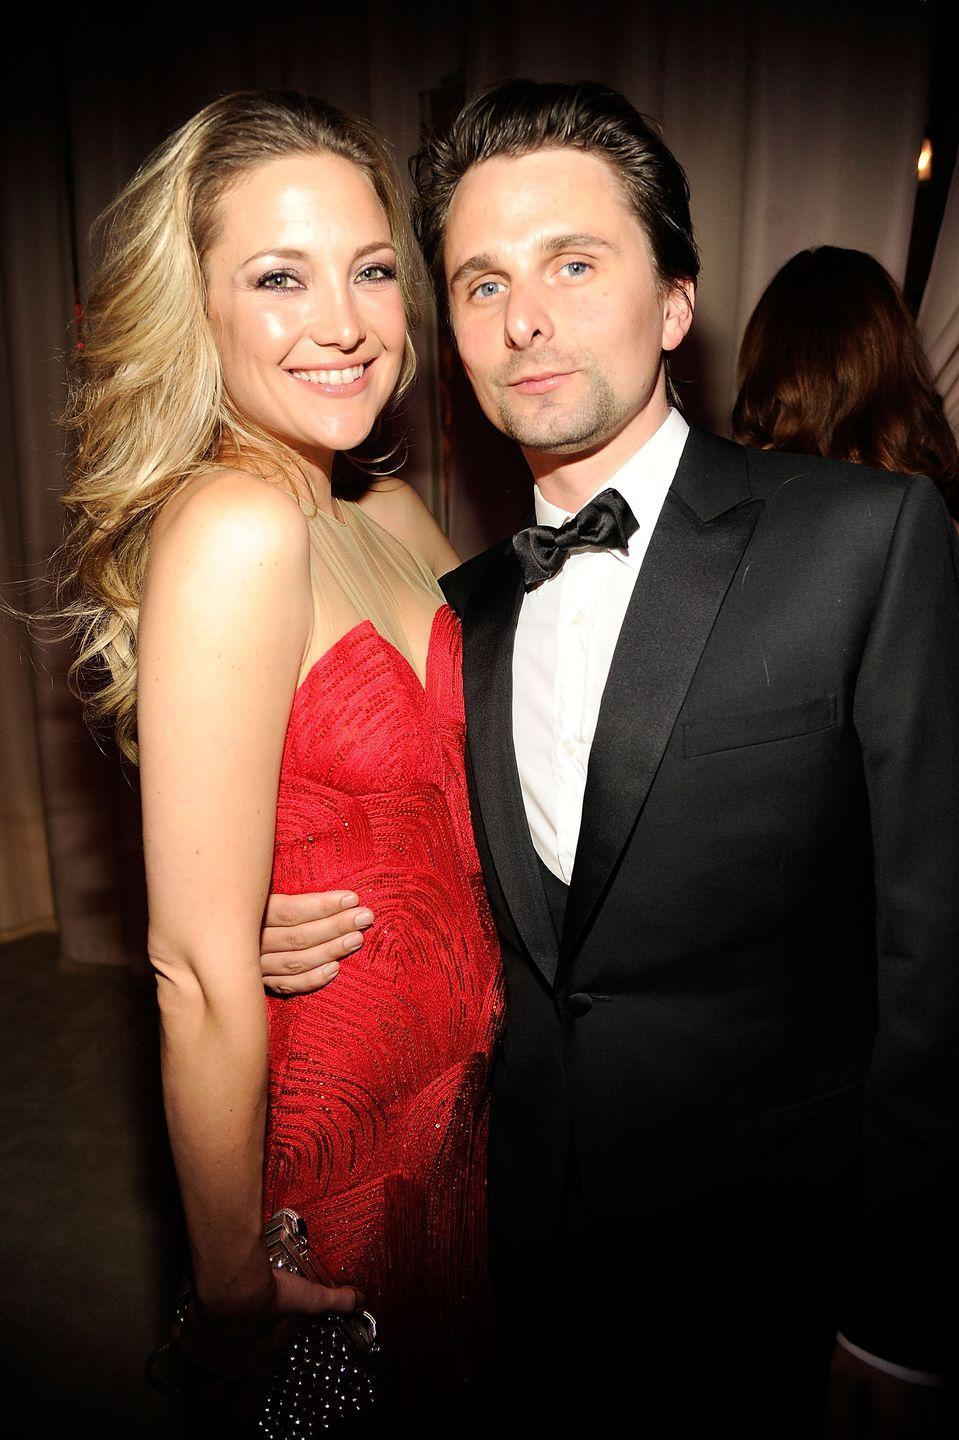 """<p>After four years and the birth of their son Bingham together, Hudson and the Muse frontman <a href=""""https://people.com/celebrity/kate-hudson-matt-bellamy-split-couple-breaks-off-engagement/"""" rel=""""nofollow noopener"""" target=""""_blank"""" data-ylk=""""slk:ended their engagement in 2014"""" class=""""link rapid-noclick-resp"""">ended their engagement in 2014</a>. """"Kate and Matt have been separated for some time now,"""" her rep told <em>People </em>at the time. """"Despite this, they remain very close friends and committed co-parents.""""</p>"""